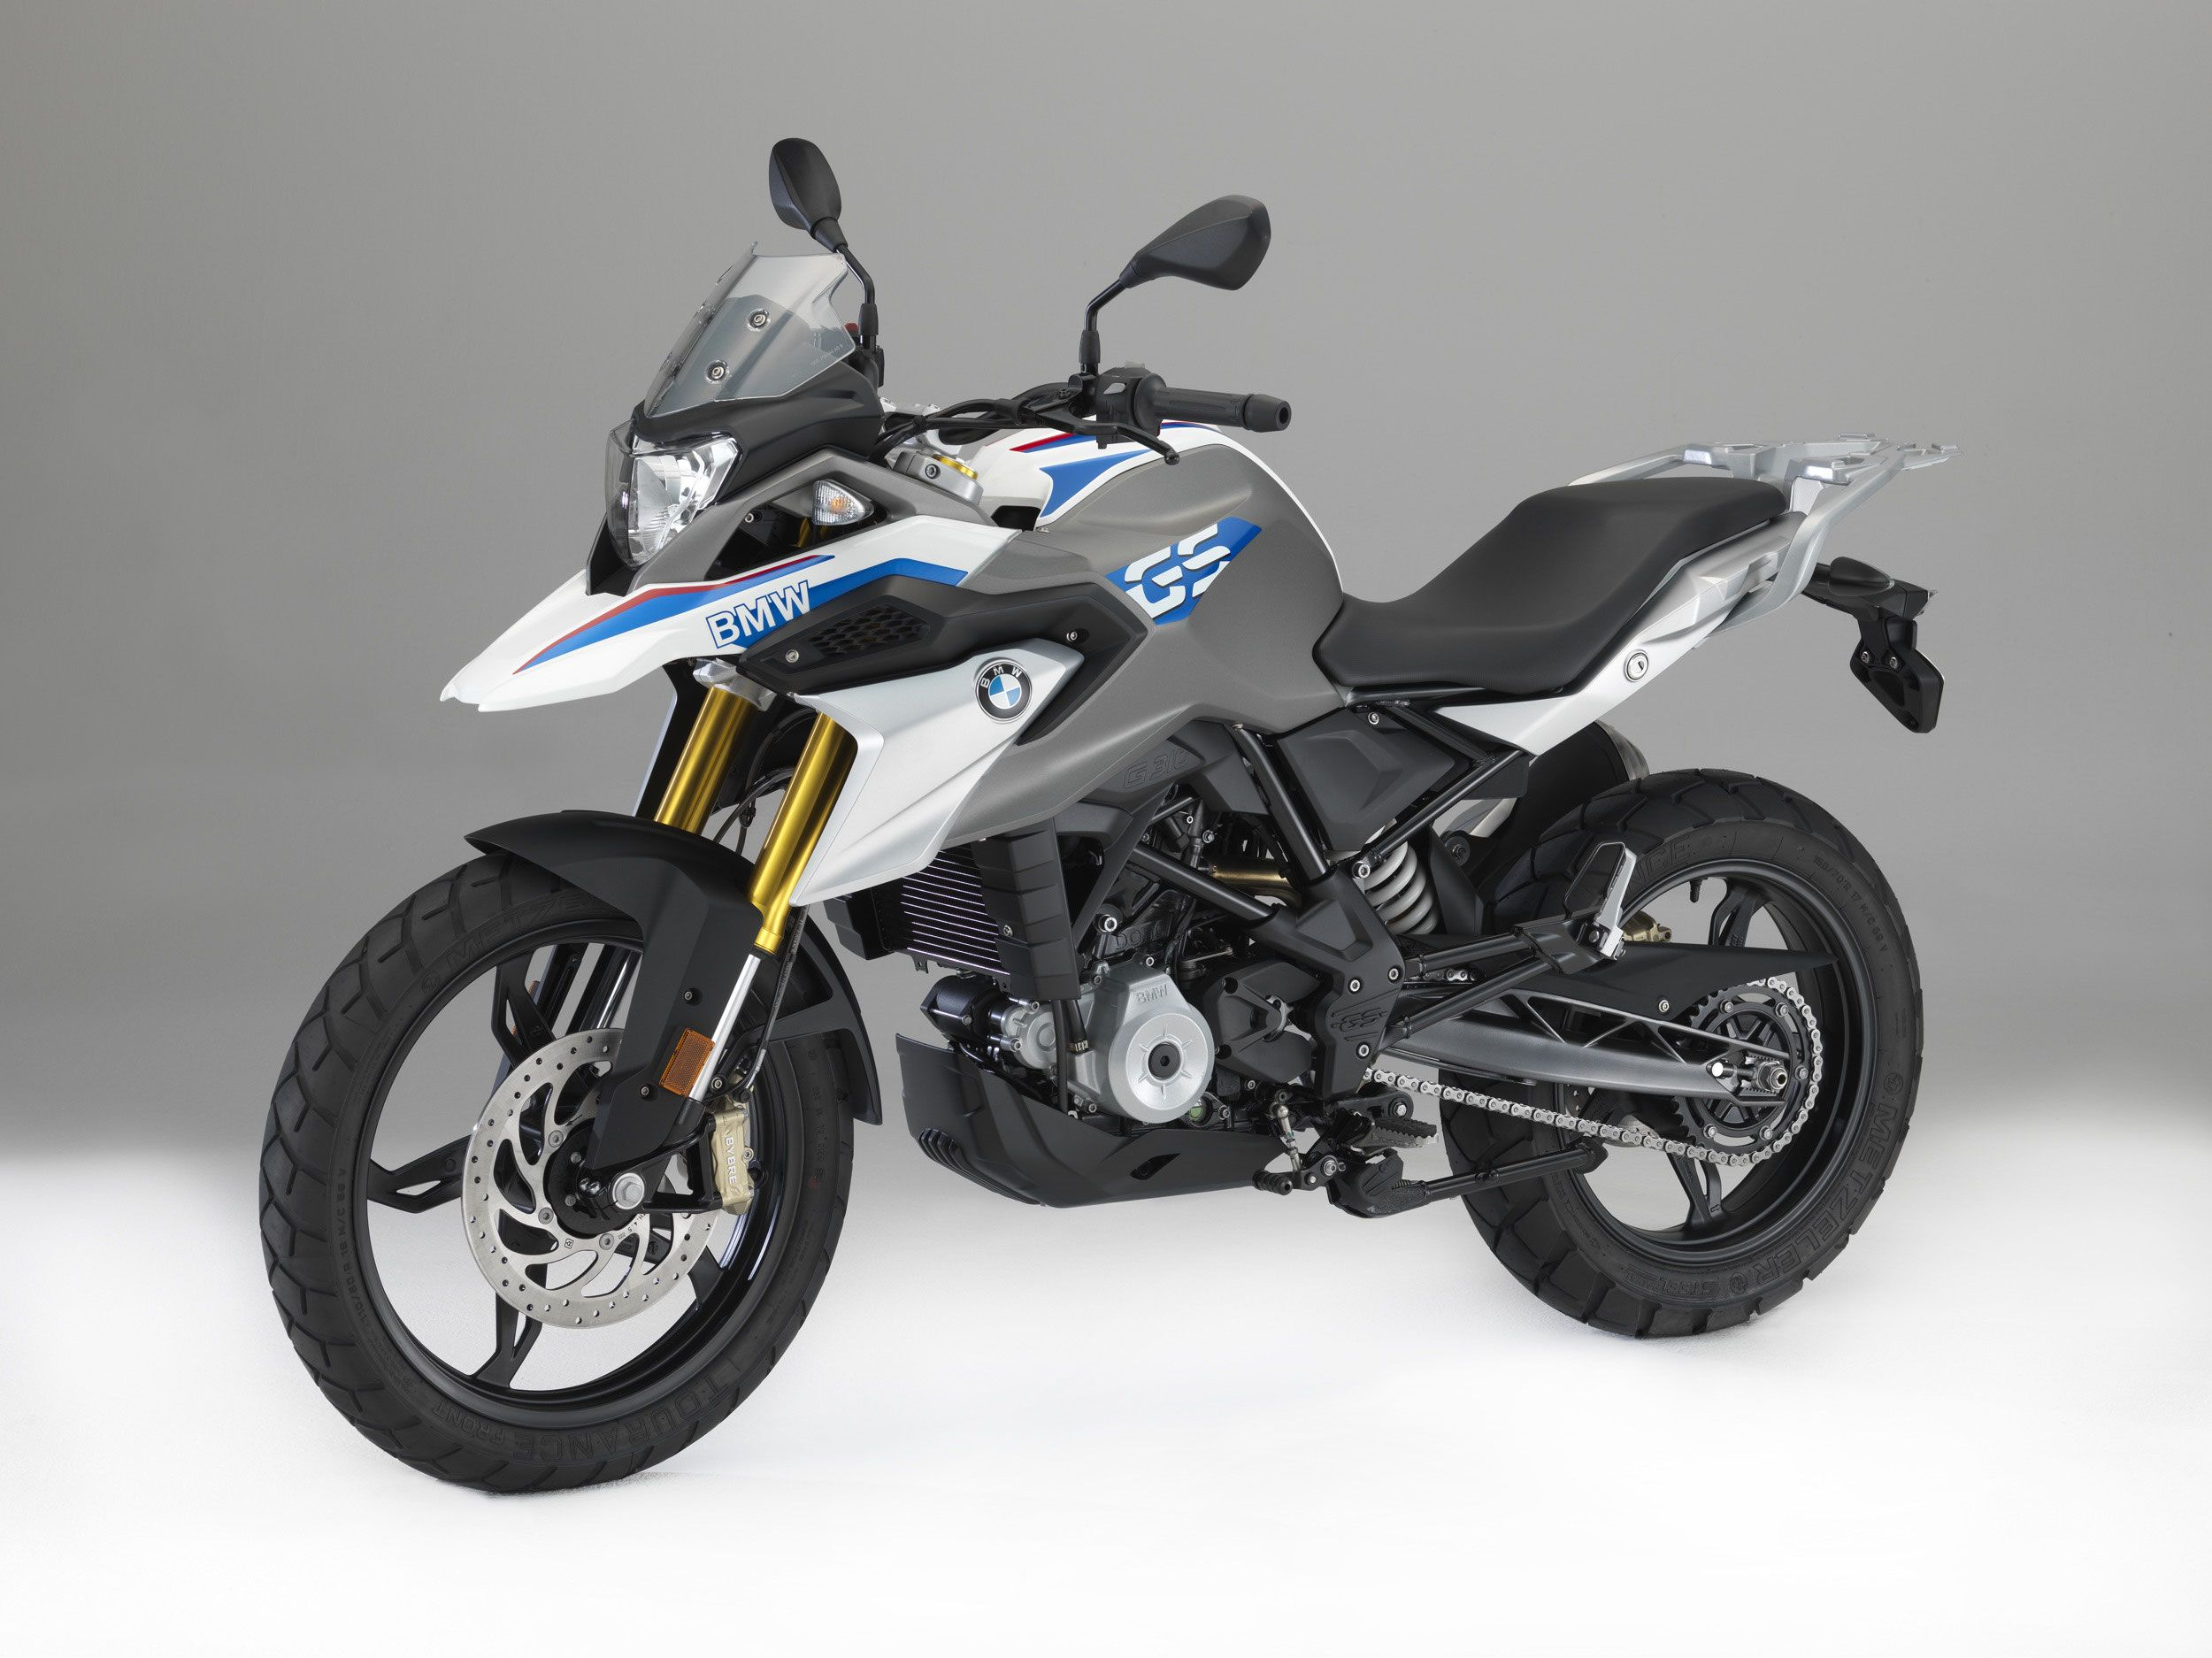 Bmw G 310 Gs Known For Their Large Capacity Adventure Touring Bikes Bmw Have Finally Announced A Small Displacement Gs Model Bmw Motorrad Bmw Motorcycle